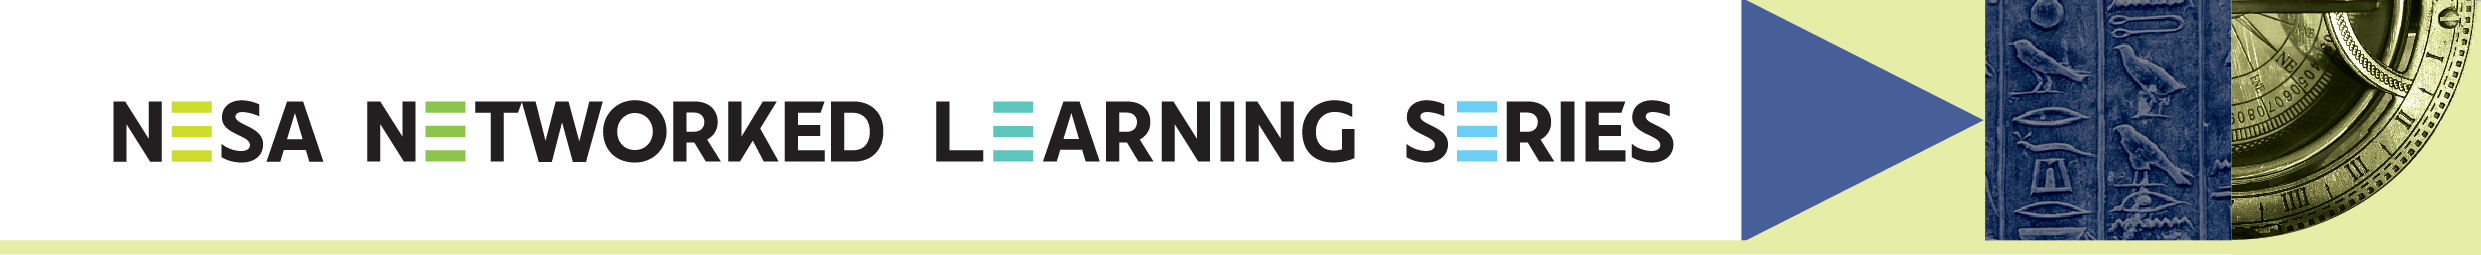 NESA Networked Learning Series Logo